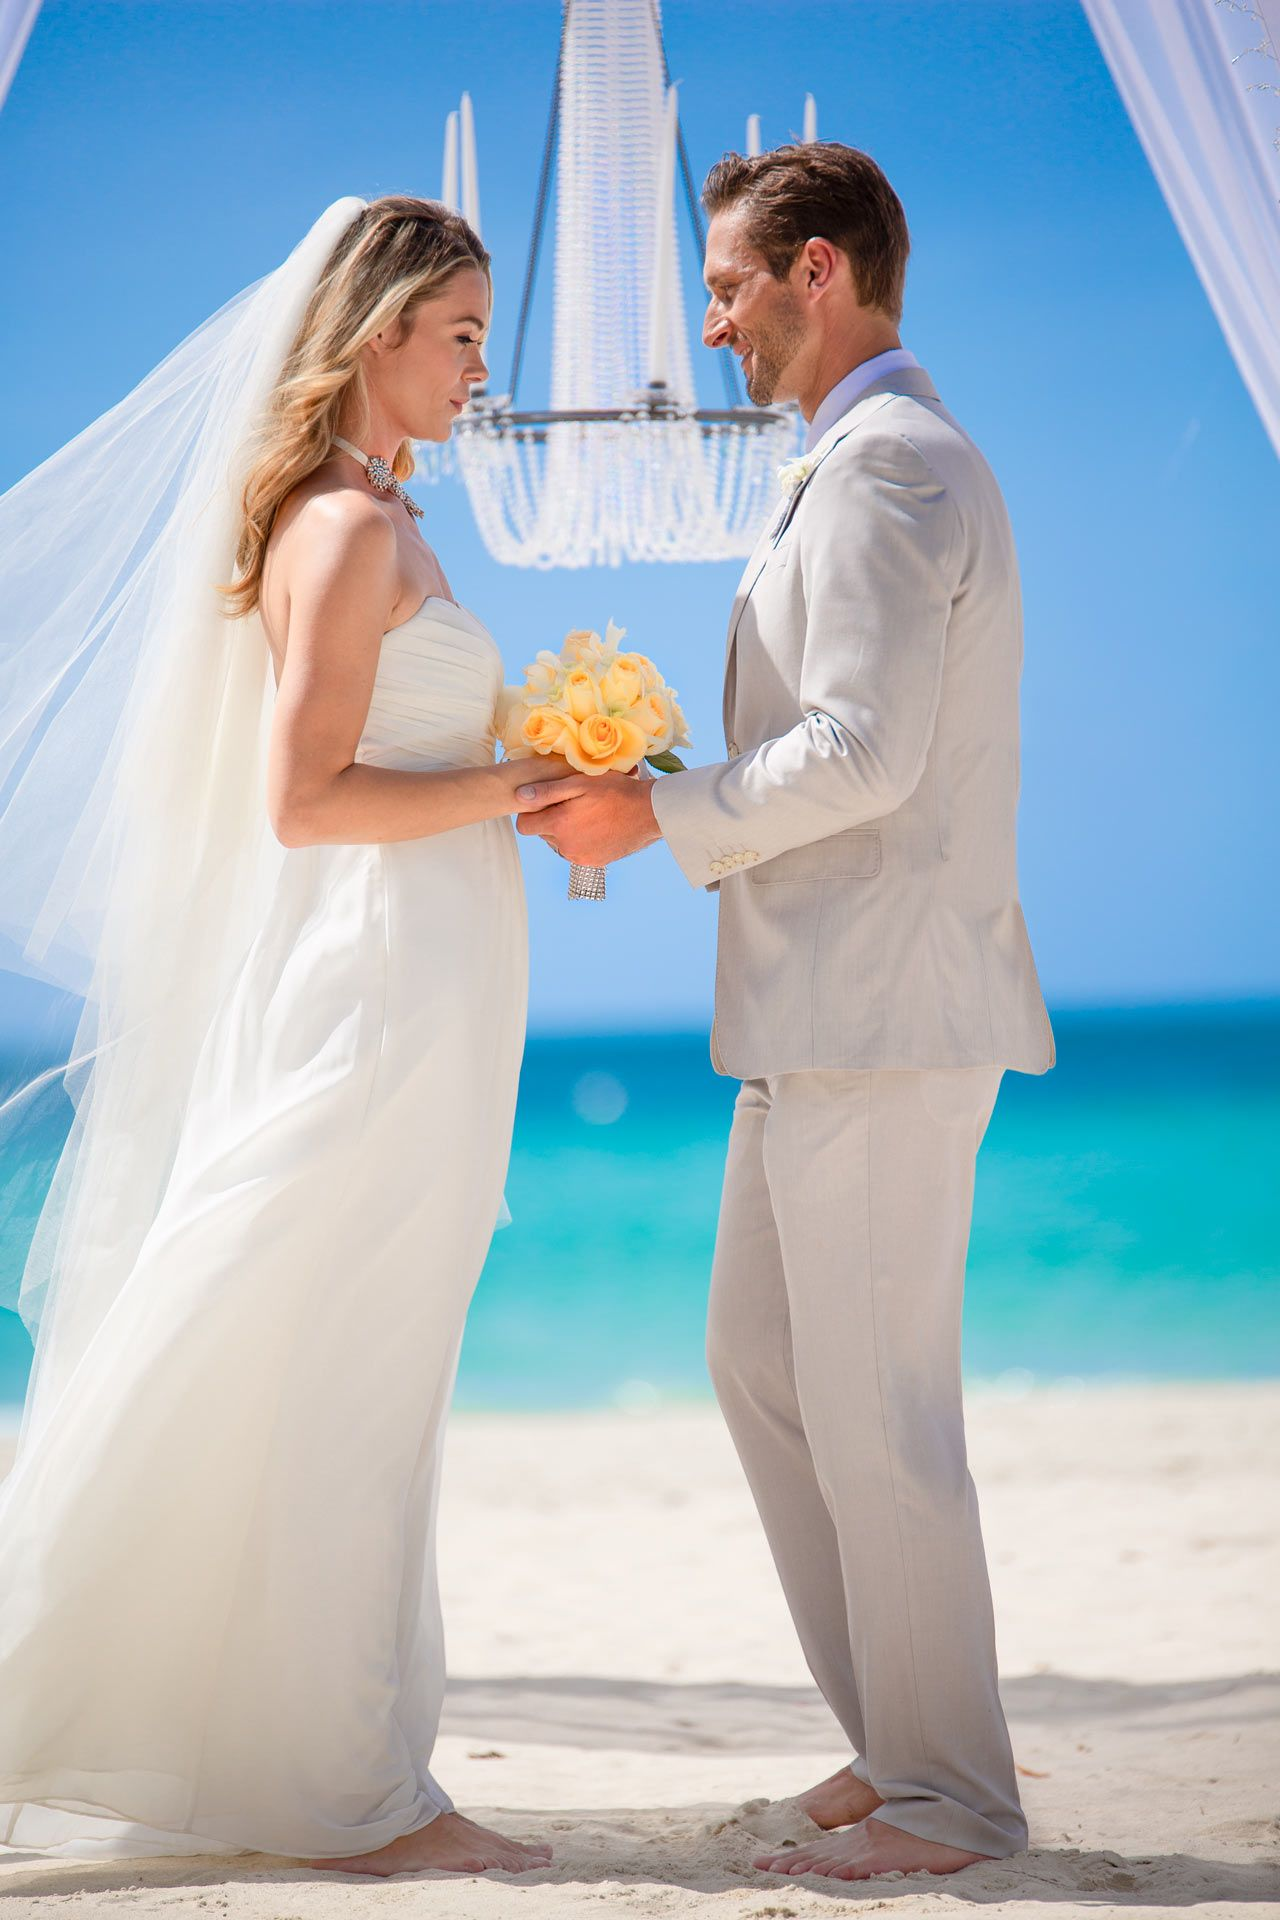 Beach elopement wedding in the Caribbean